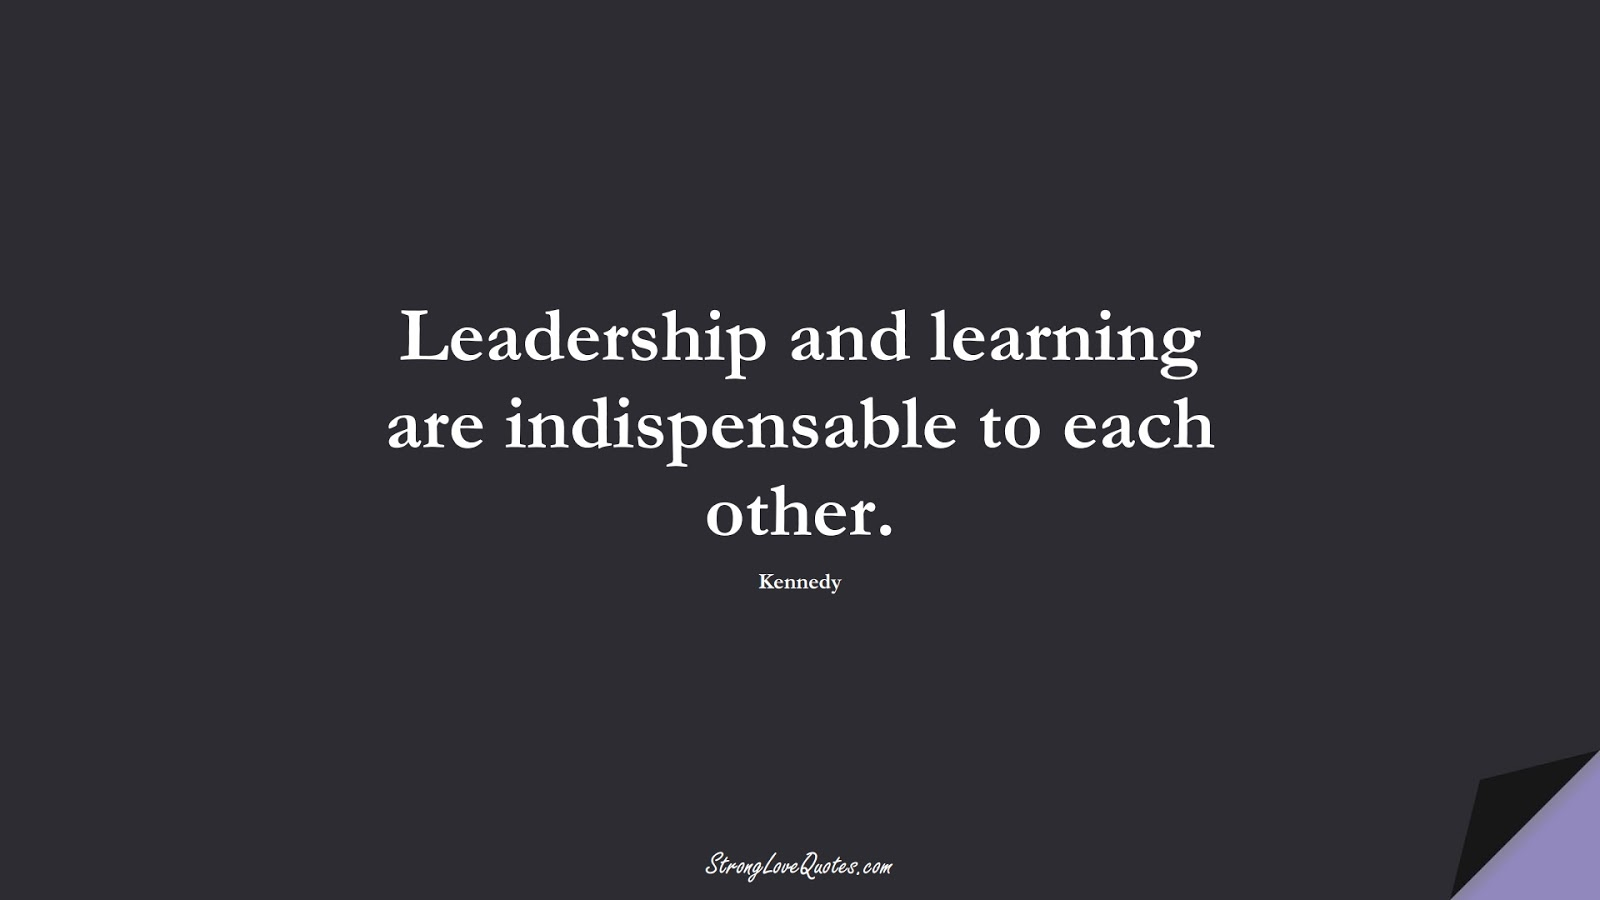 Leadership and learning are indispensable to each other. (Kennedy);  #LearningQuotes